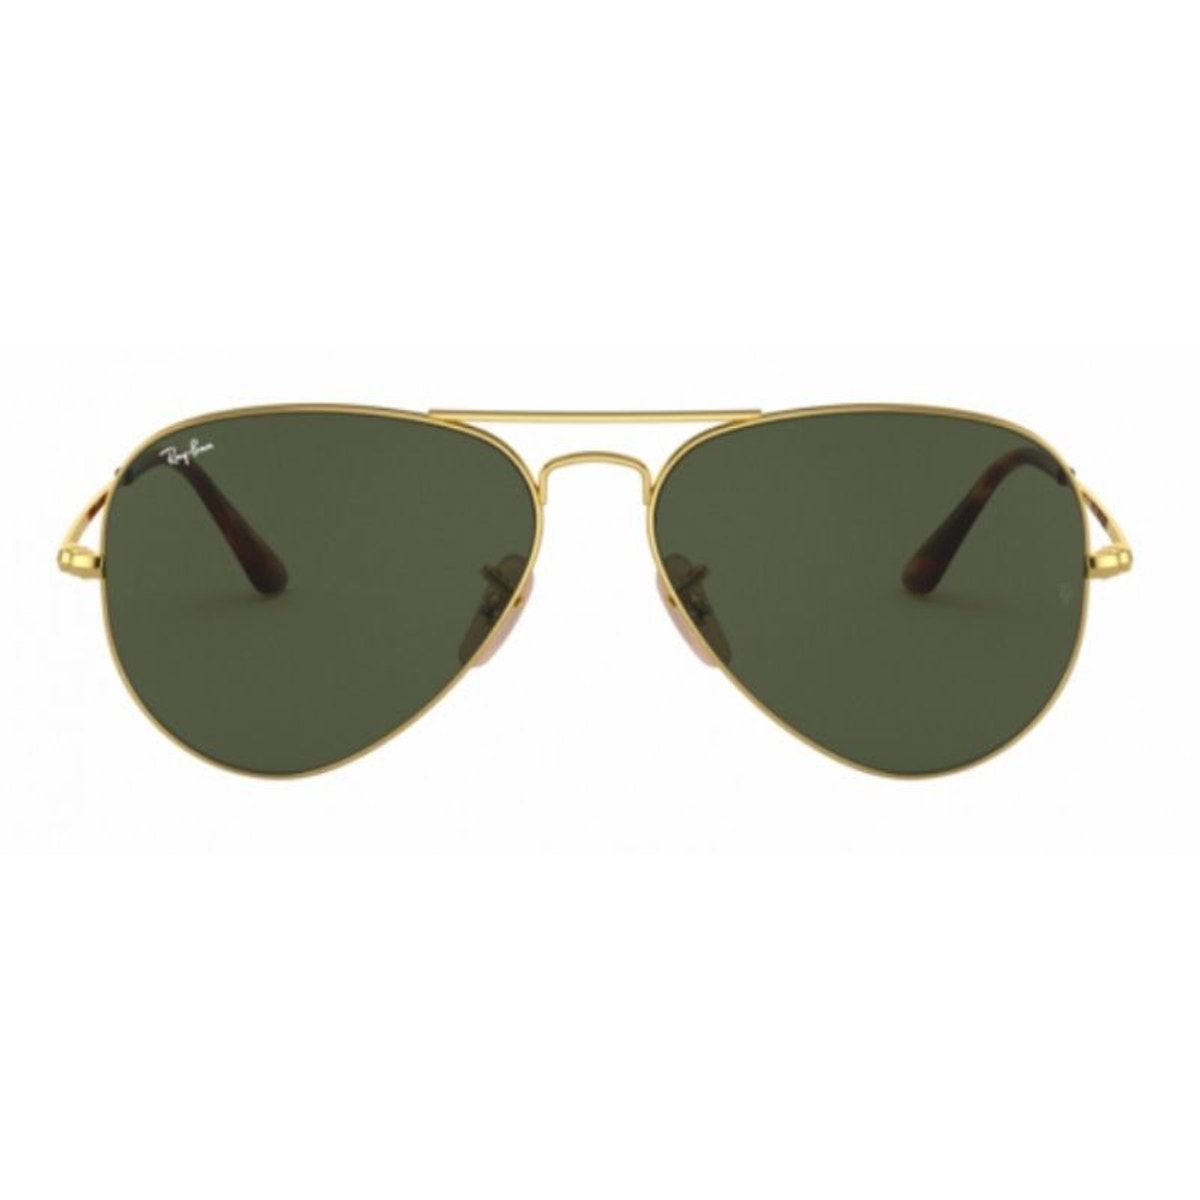 ray ban aviator femme petite taille